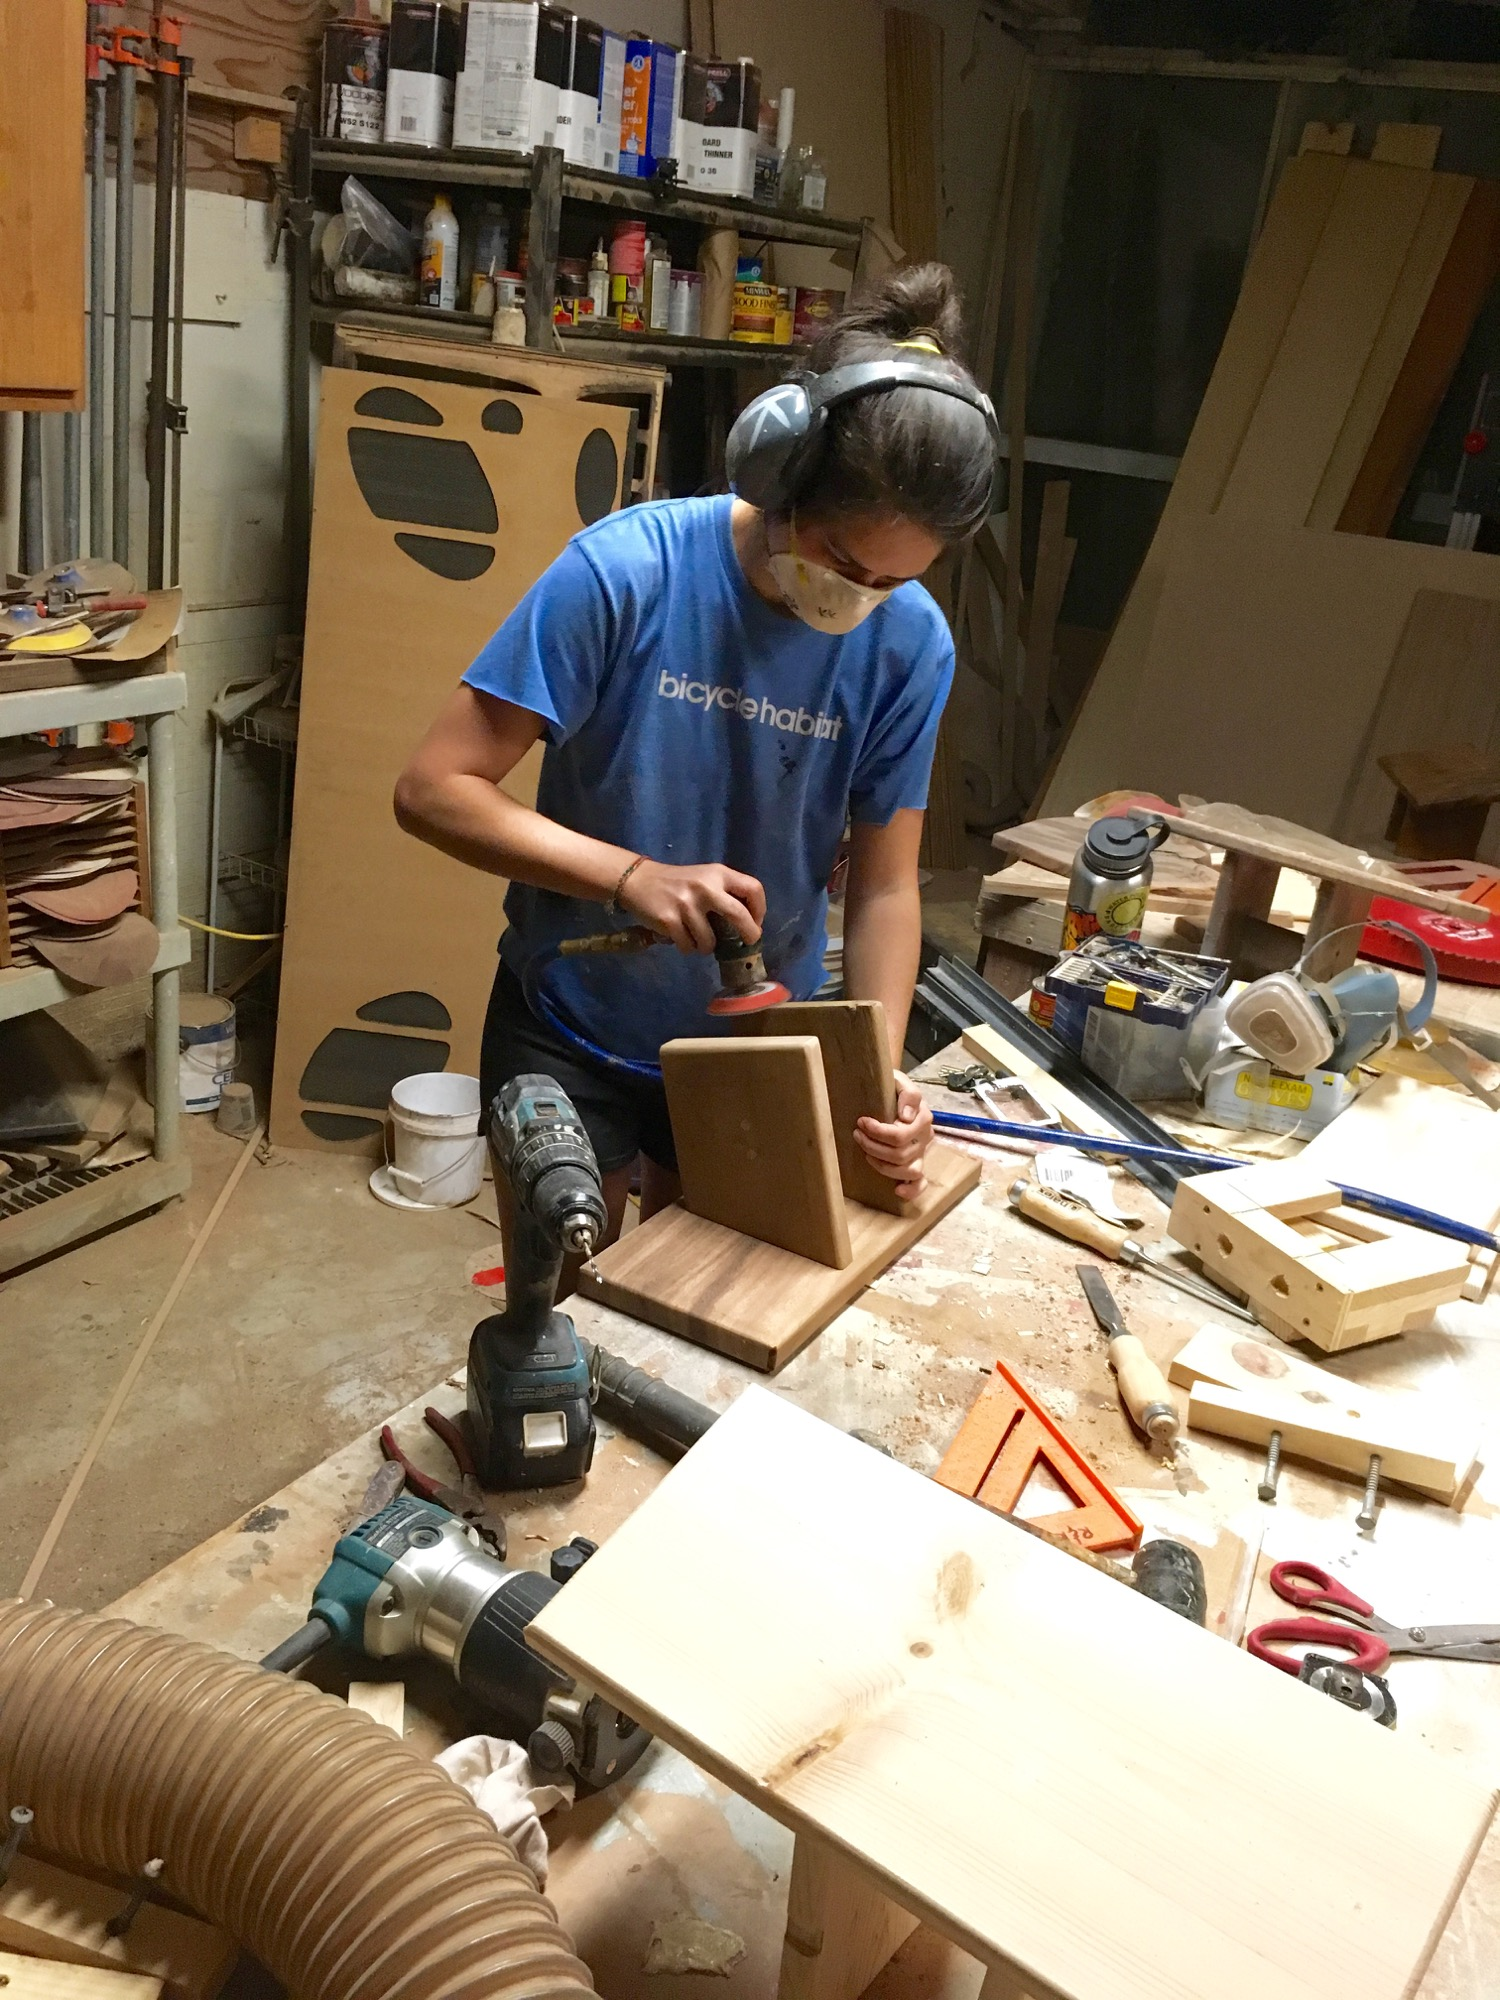 Finish sanding a monkeypod stool using a air-powered detailed sander.